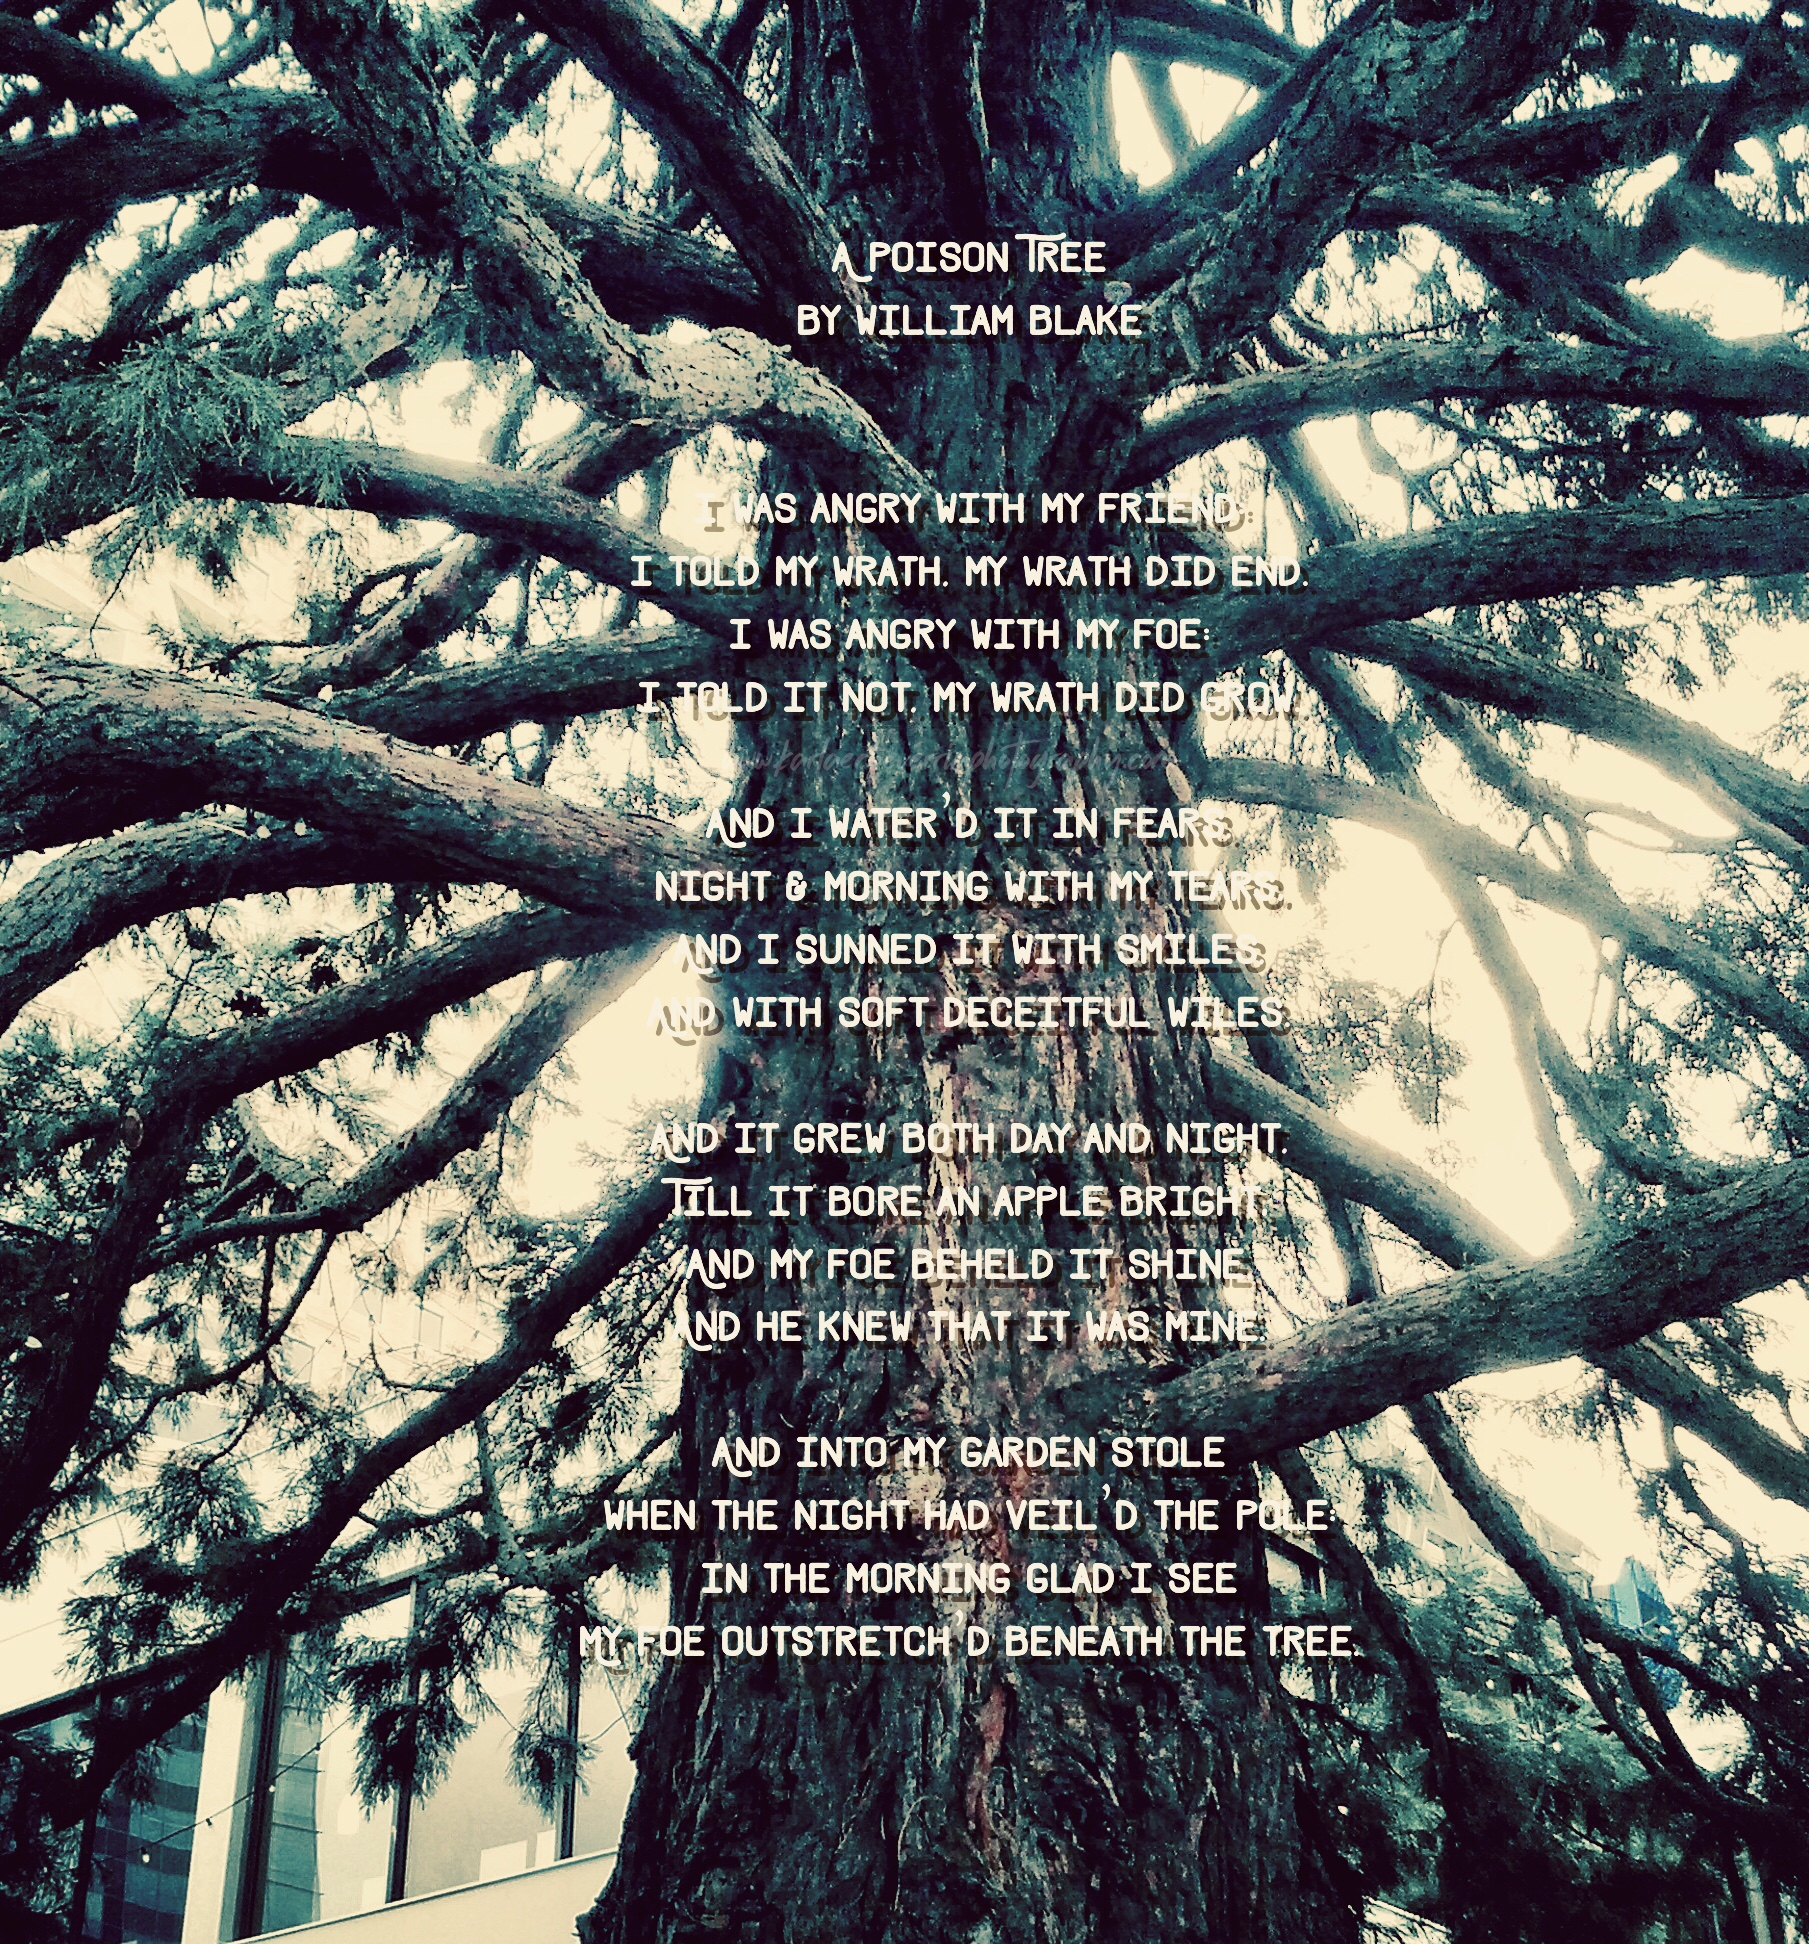 a poison tree by william blake pdf